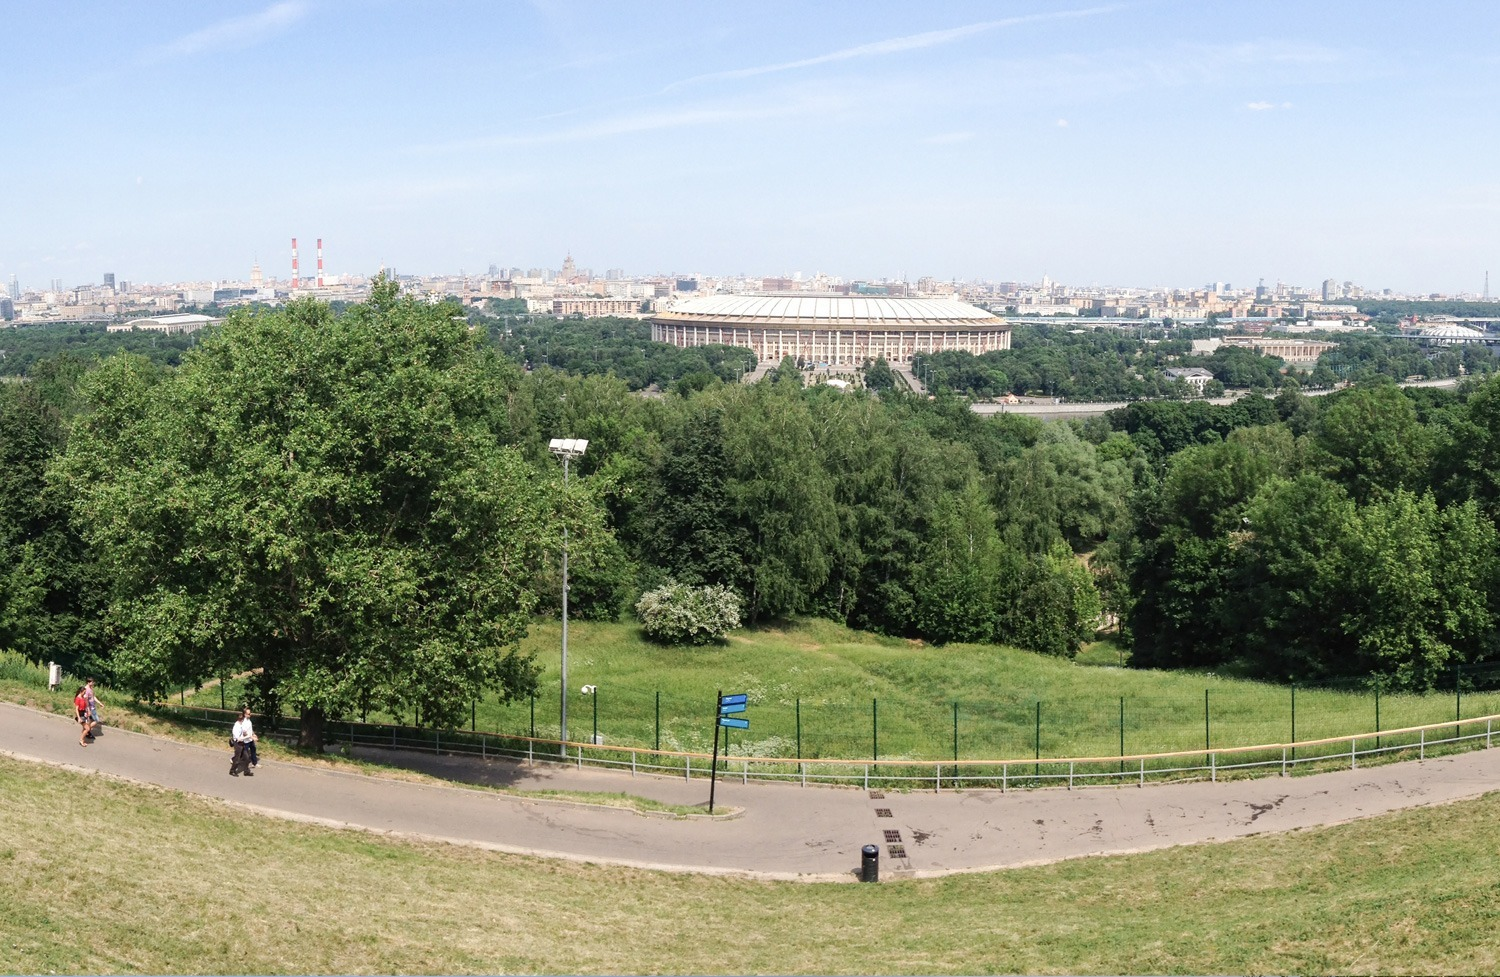 Moscow from the Sparrow Hills - Small Things in Big Numbers